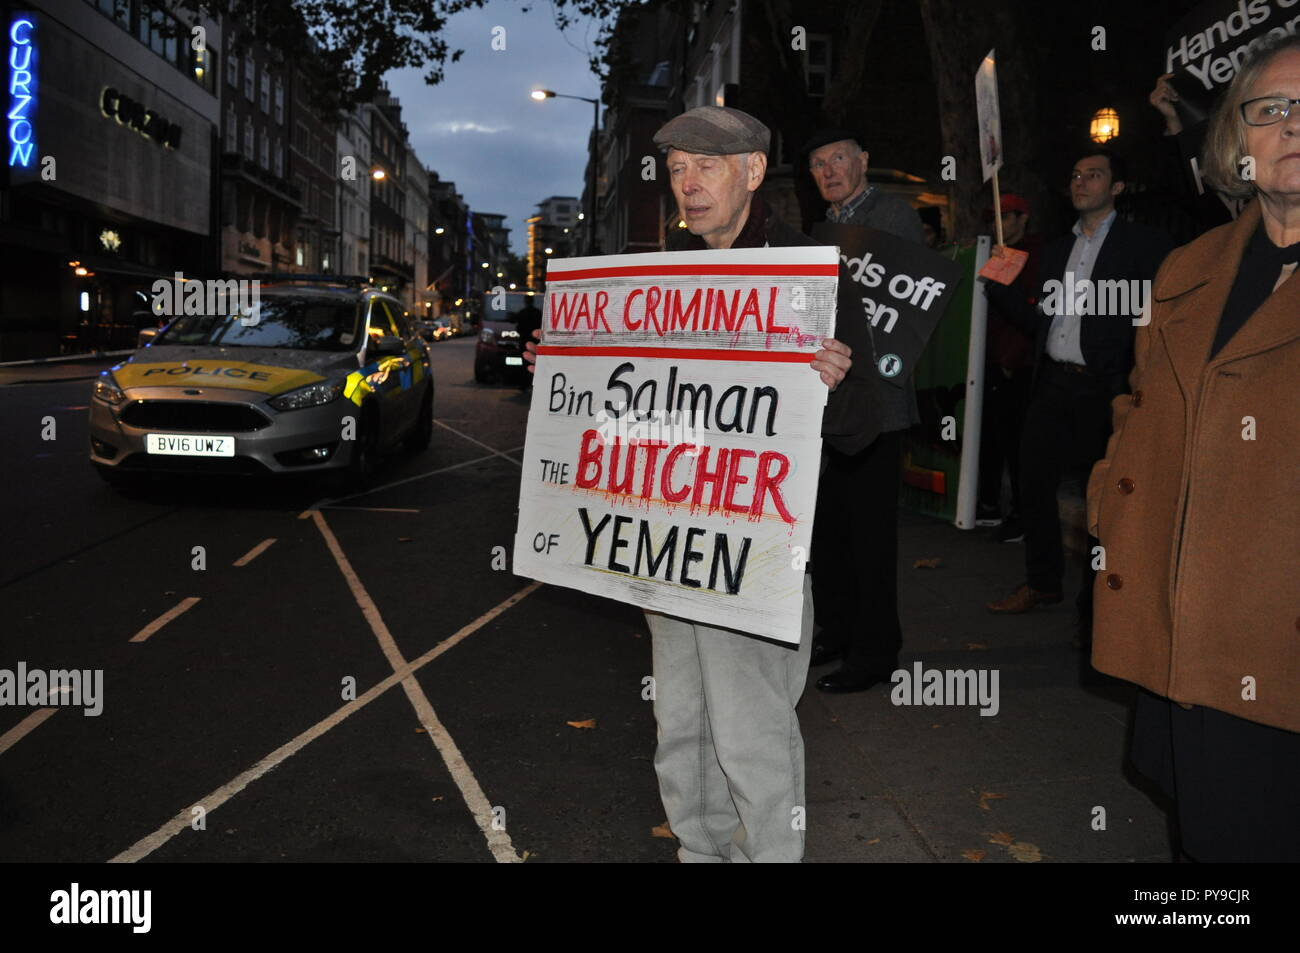 London/UK. 25th October 2018.Demonstration outside Saudi Arabian Embassy, Stop the War Coalition supporters with placards: Bin Salman Butcher of Yemen - Stock Image